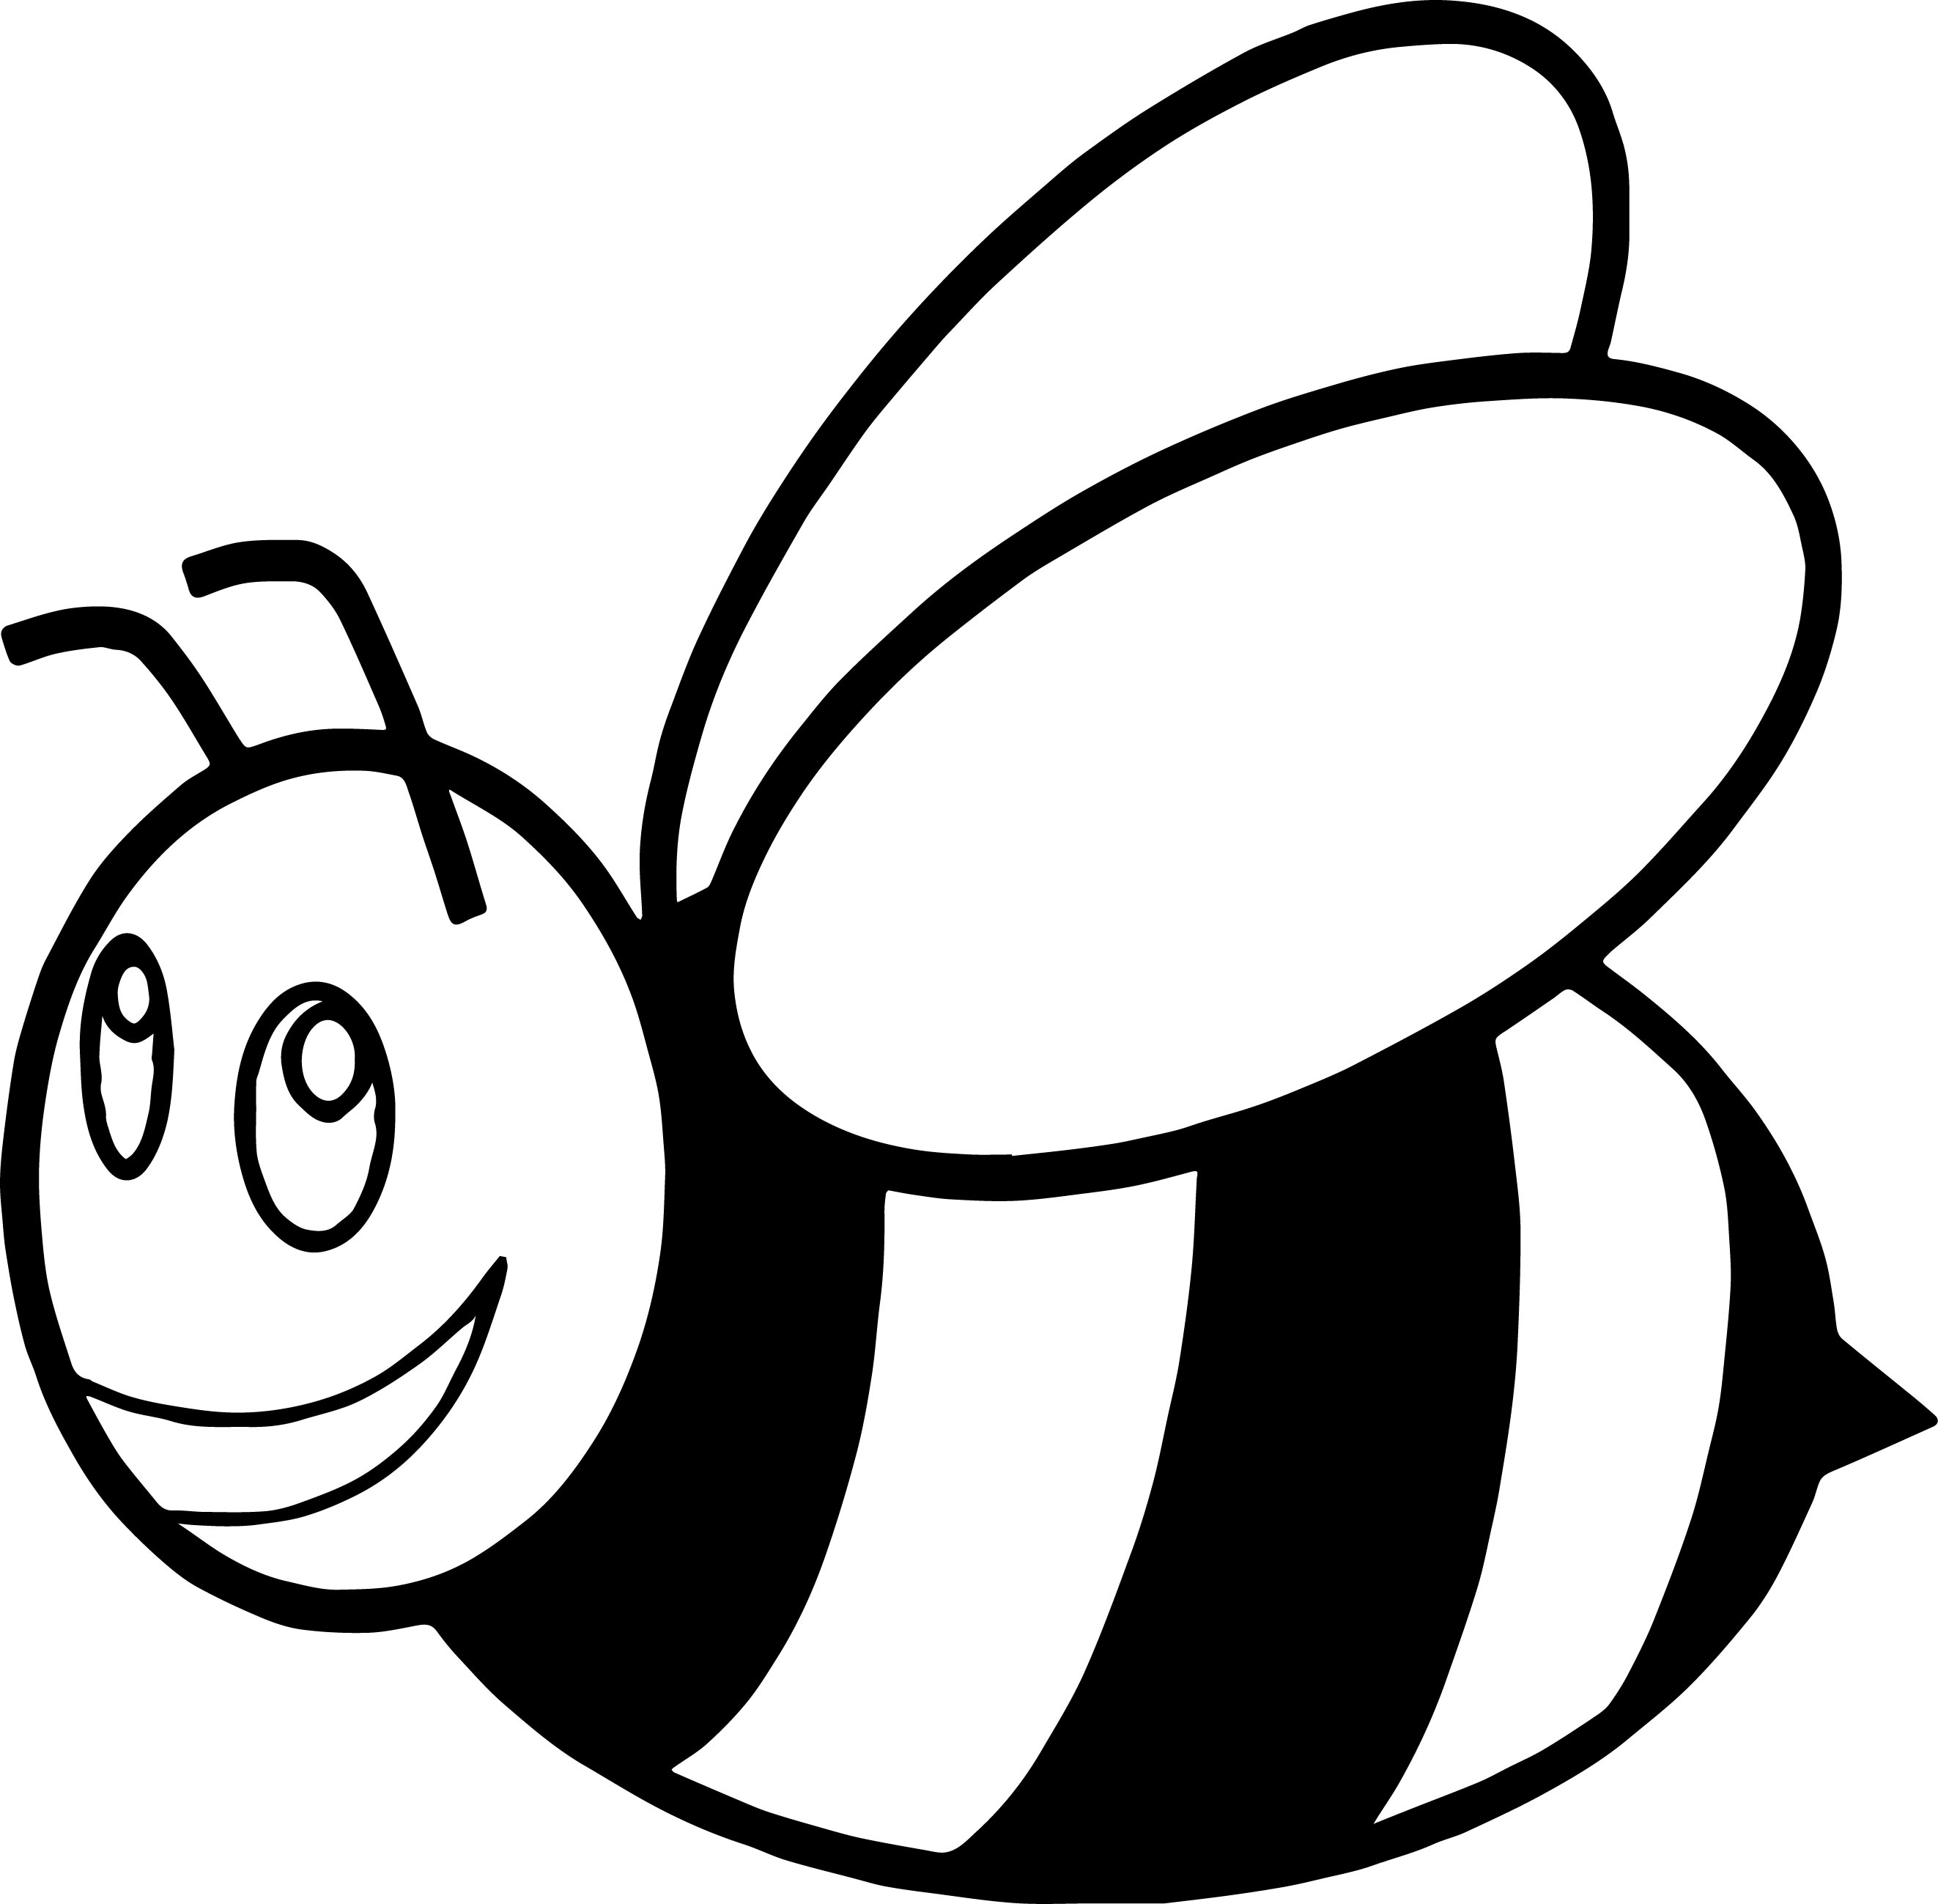 bumble bee coloring page free printable bumble bee coloring pages for kids page coloring bee bumble